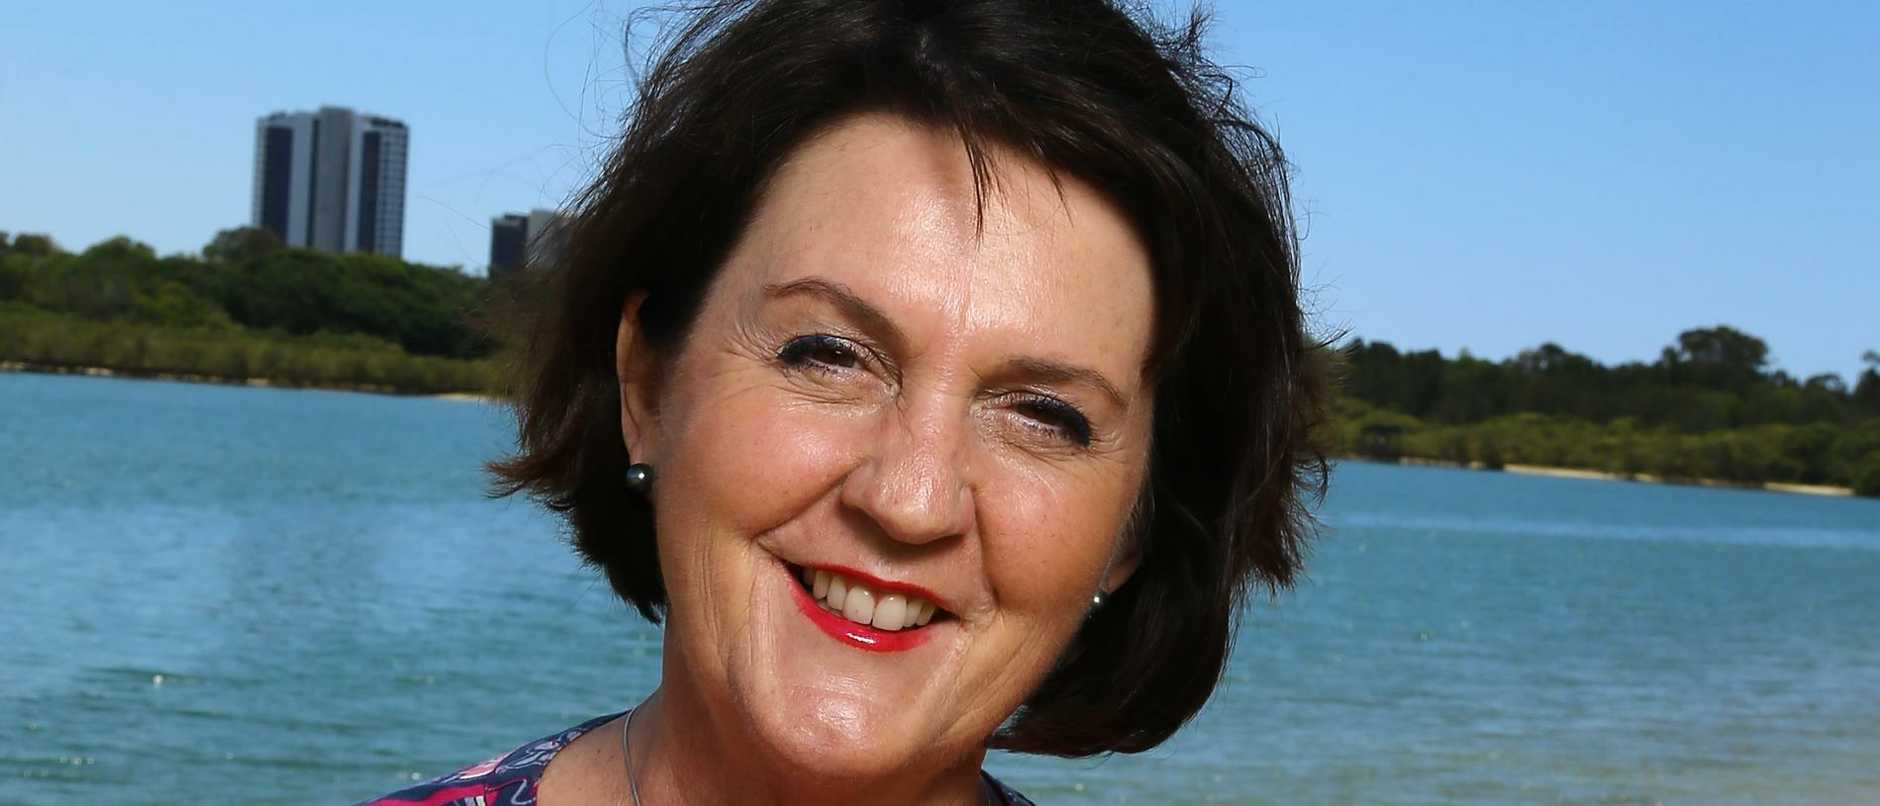 The LNP president has blasted retired MP Jann Stuckey in an extraordinary newsletter, saying members like her are no longer welcome in the party.